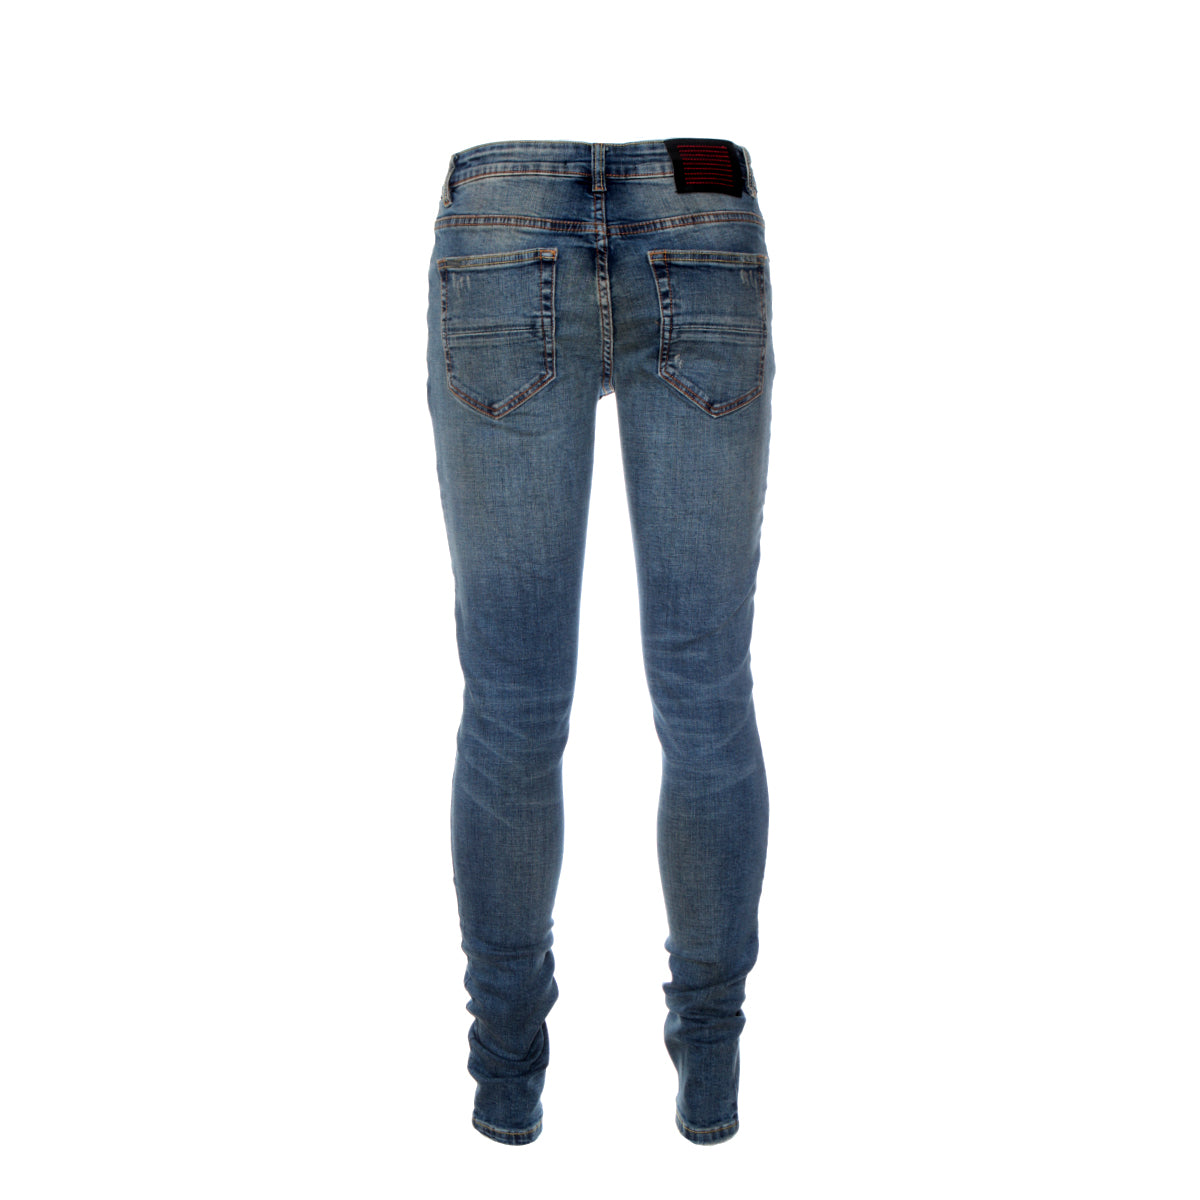 Serenede Architect 22 Men's Skinny Designer Jeans